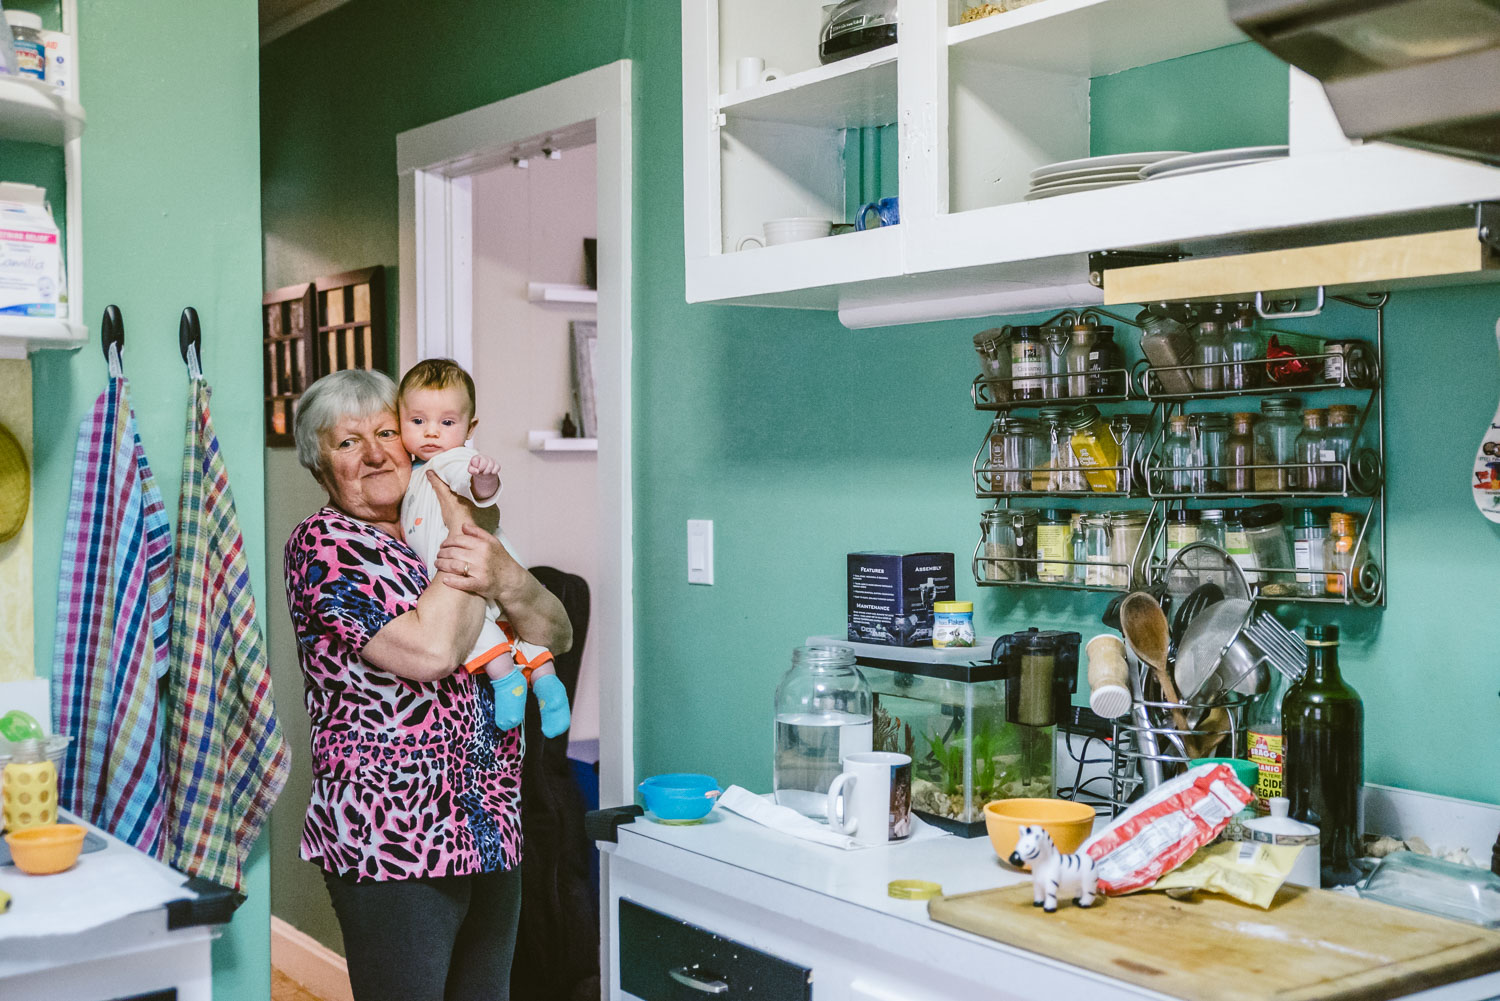 Grandmother and baby in kitchen.